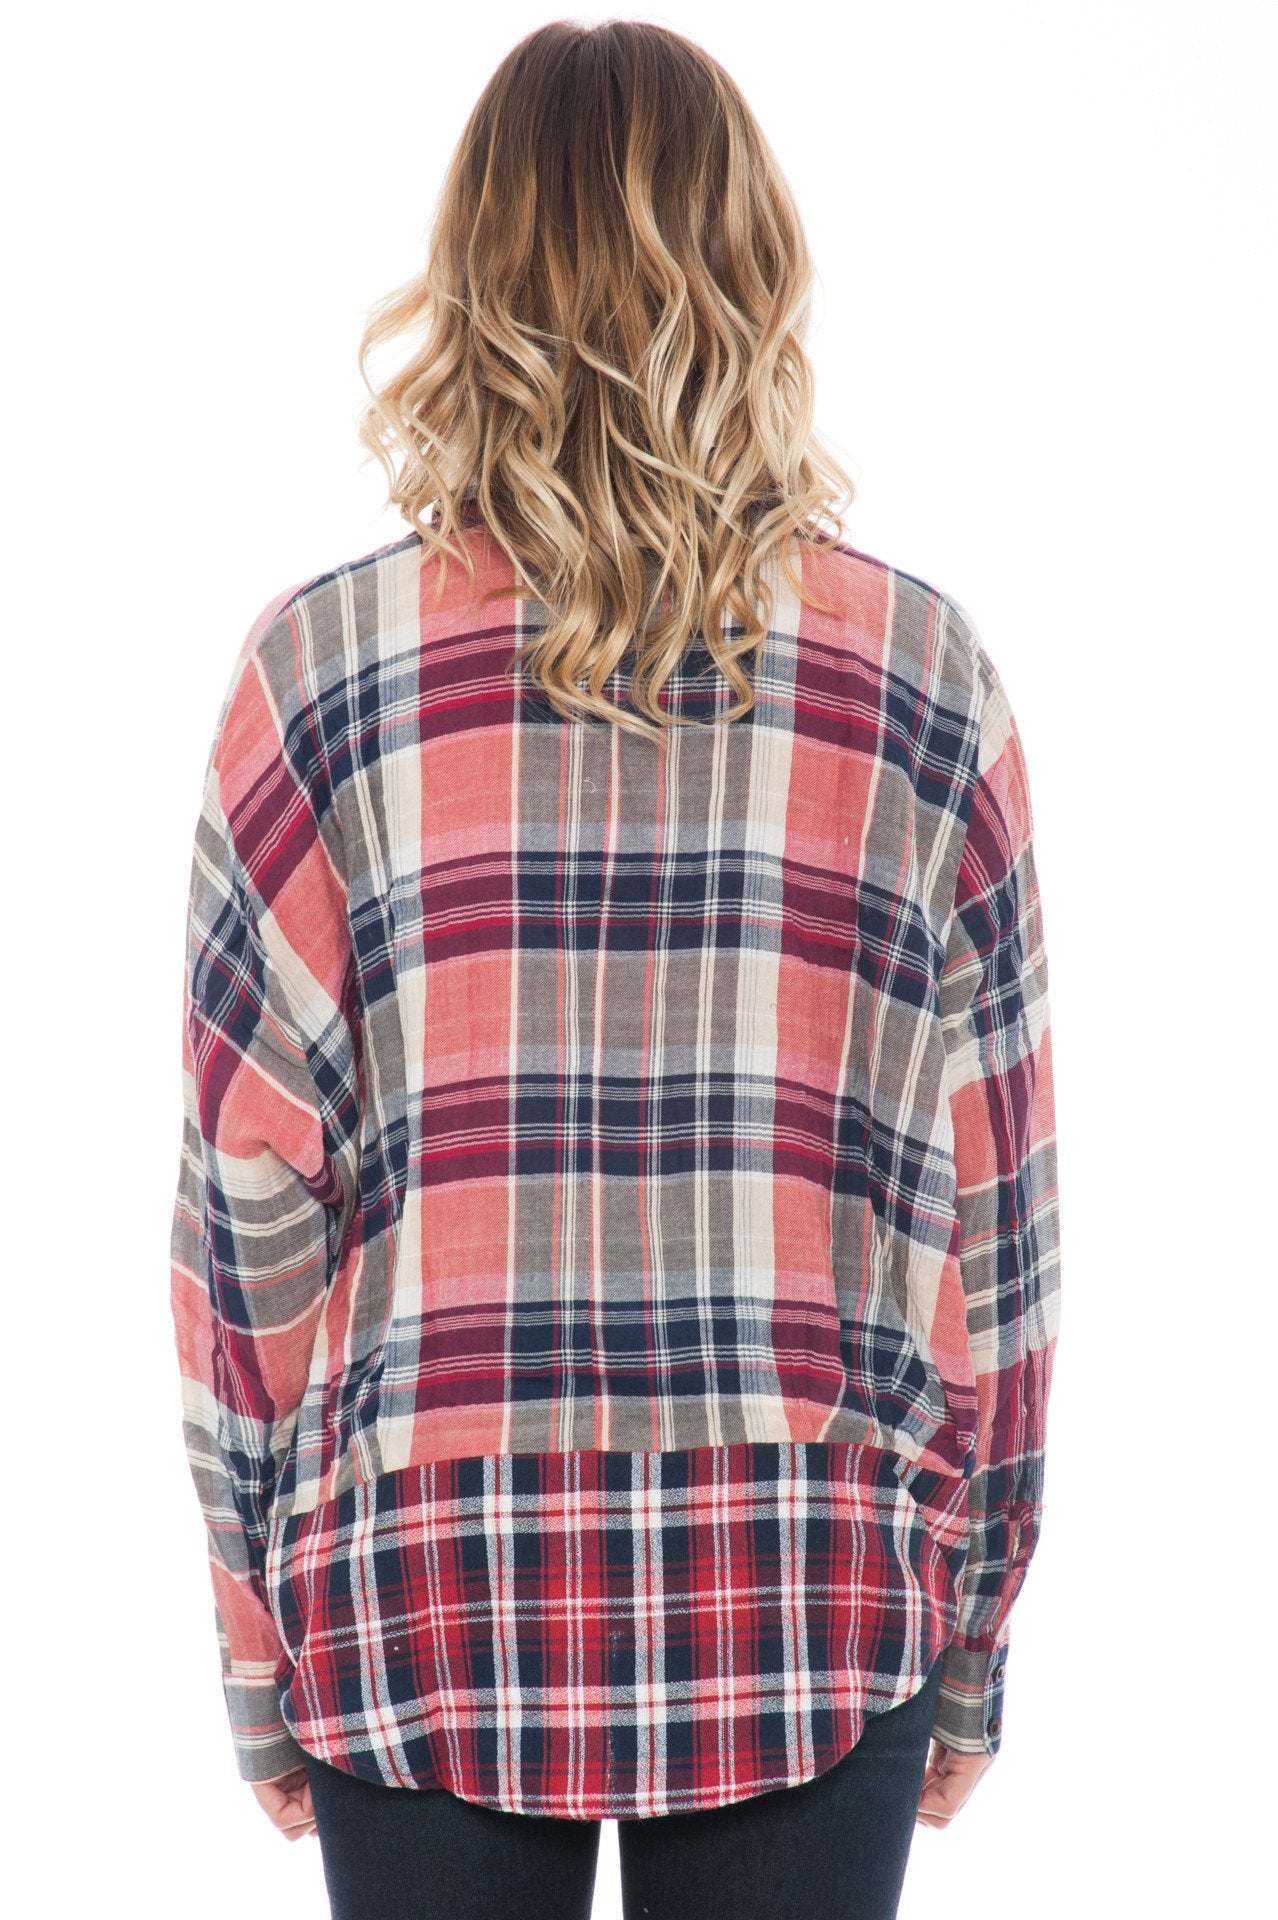 Top - Plaid Button Up Flannel By Paper Crane (Final Sale)